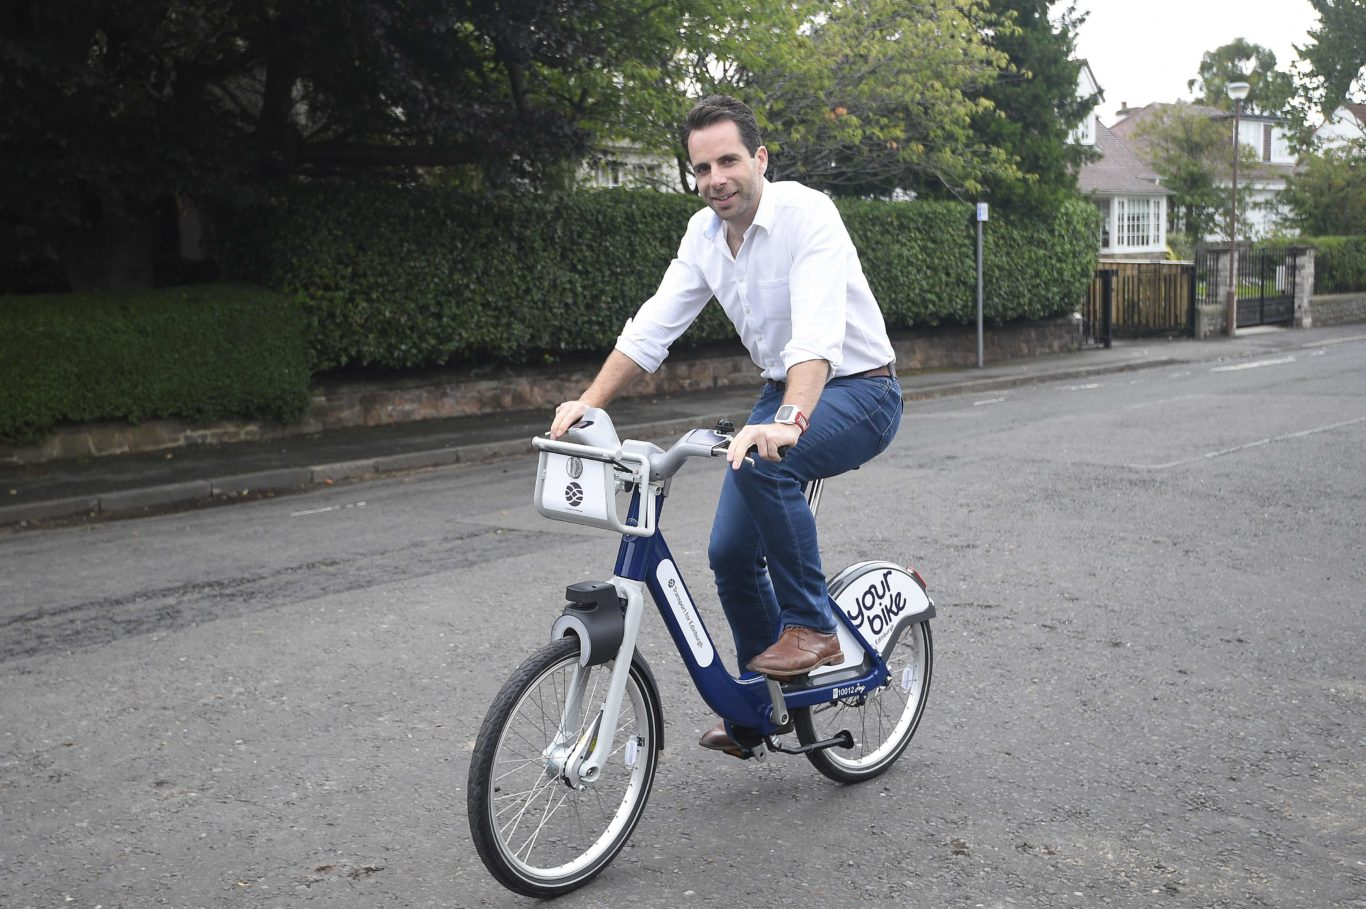 Mark Beaumont on one of the new Pashley bikes.